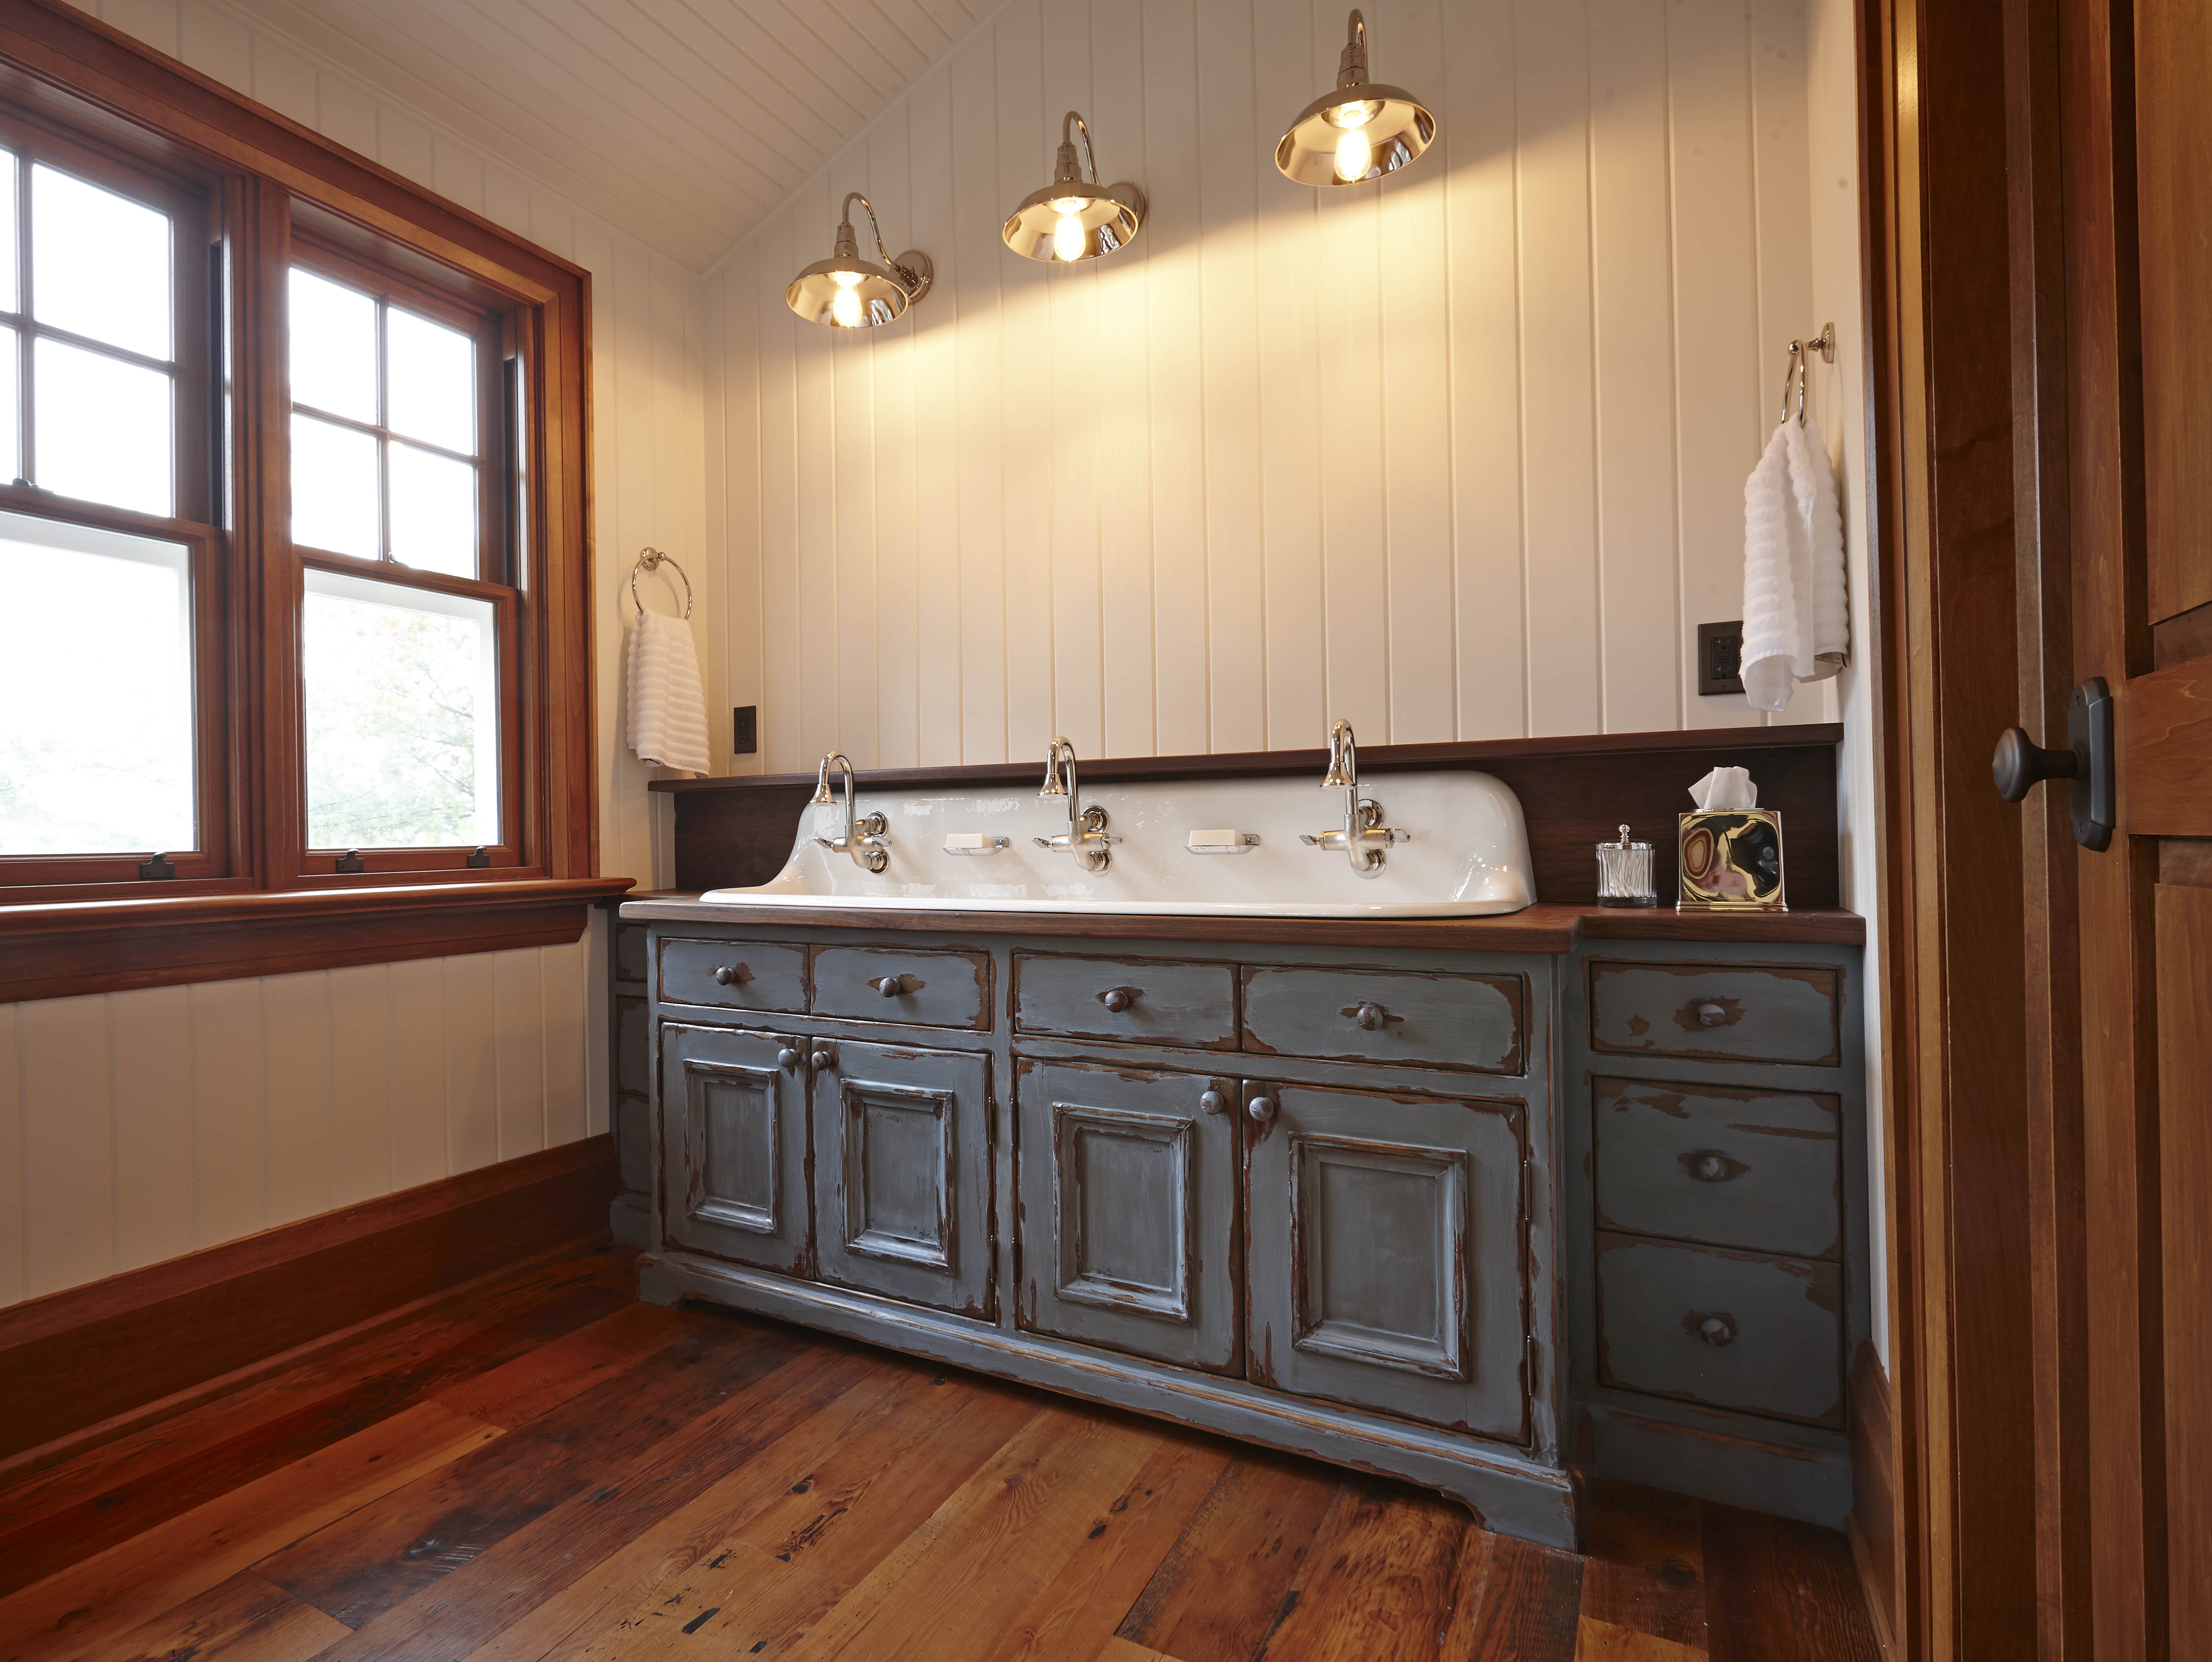 We Are Proud To Announce That One Of Our Favorite Custom Vanity Cabinets  And Its Beautiful Finish Has Been Featured In An Article On Houzz.